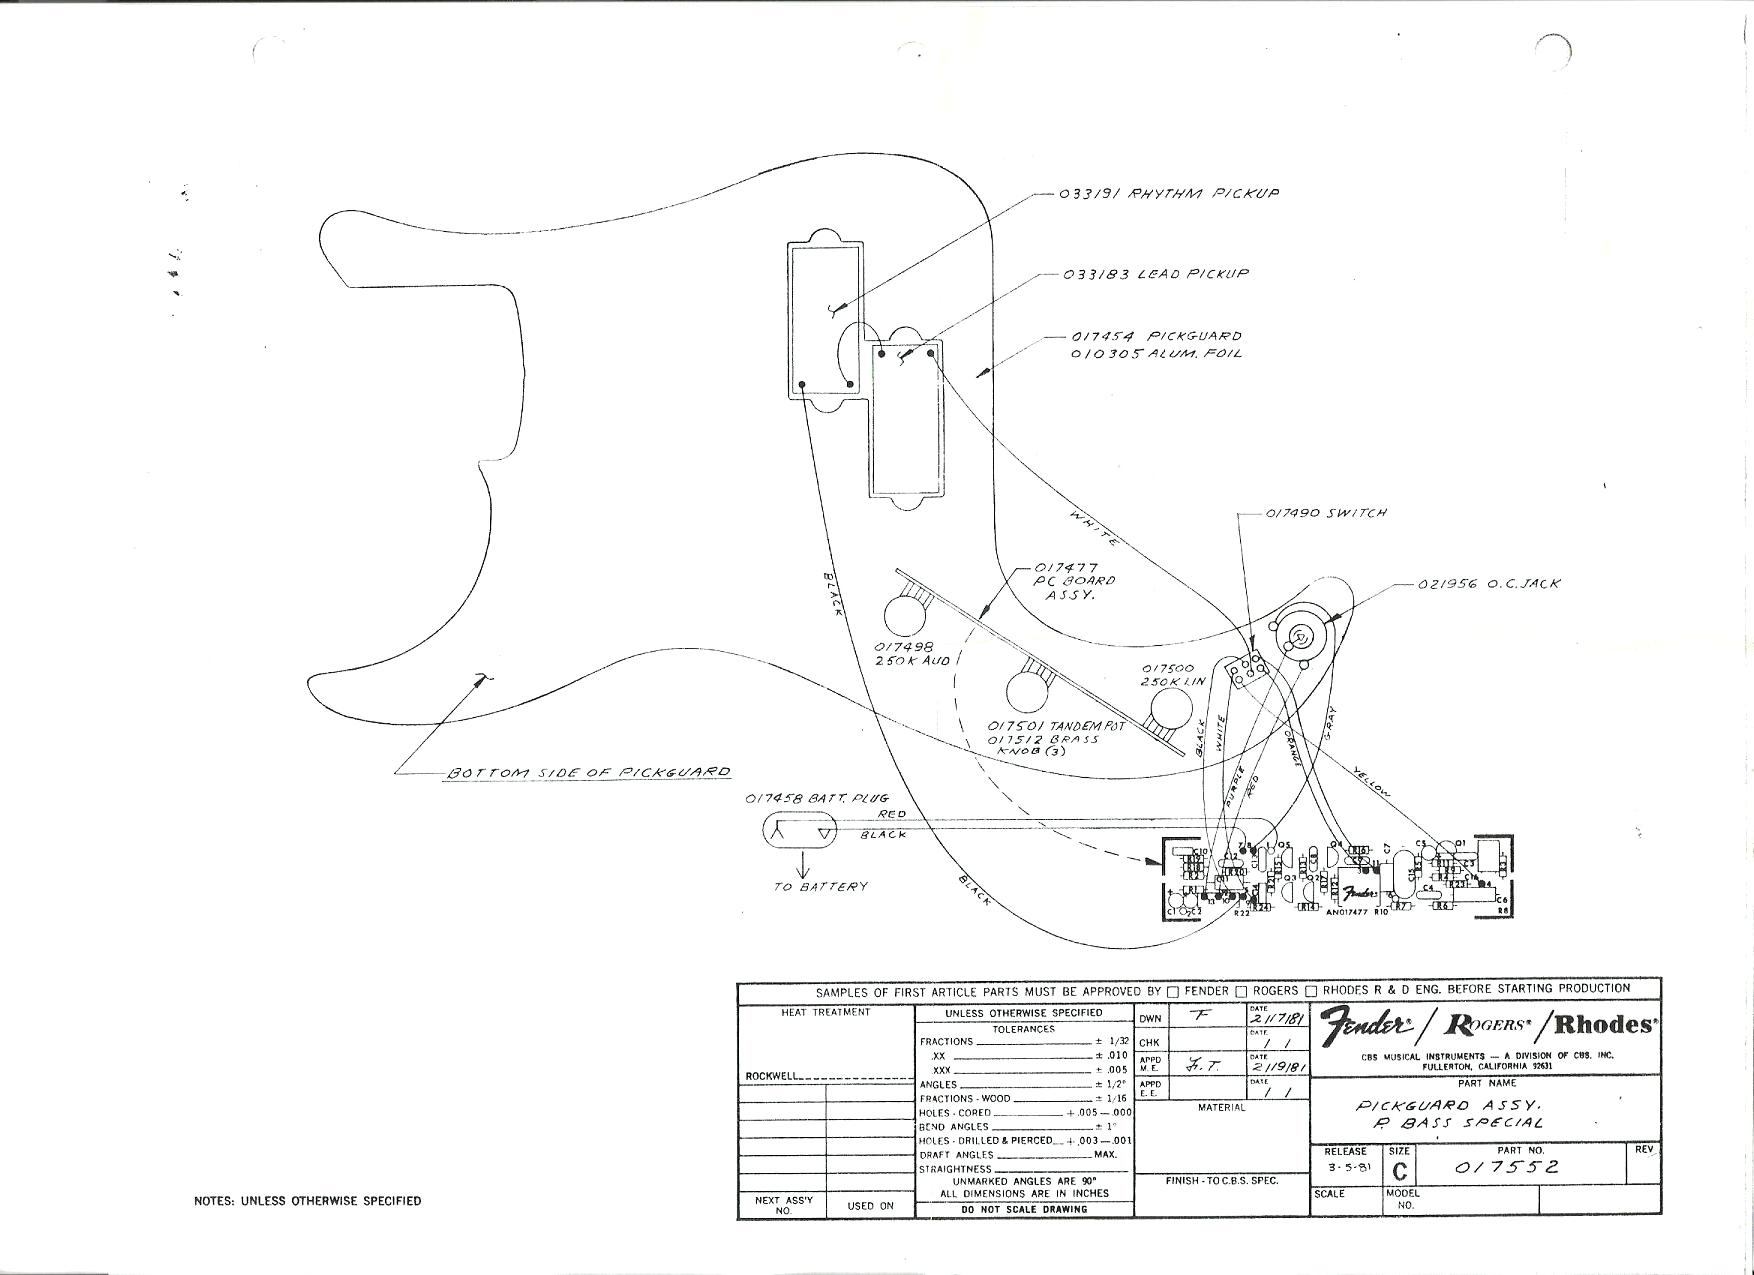 Telecaster Drawing At Free For Personal Use Chicago 3 Way Wiring Diagram 1754x1275 Fender Switch Instructions